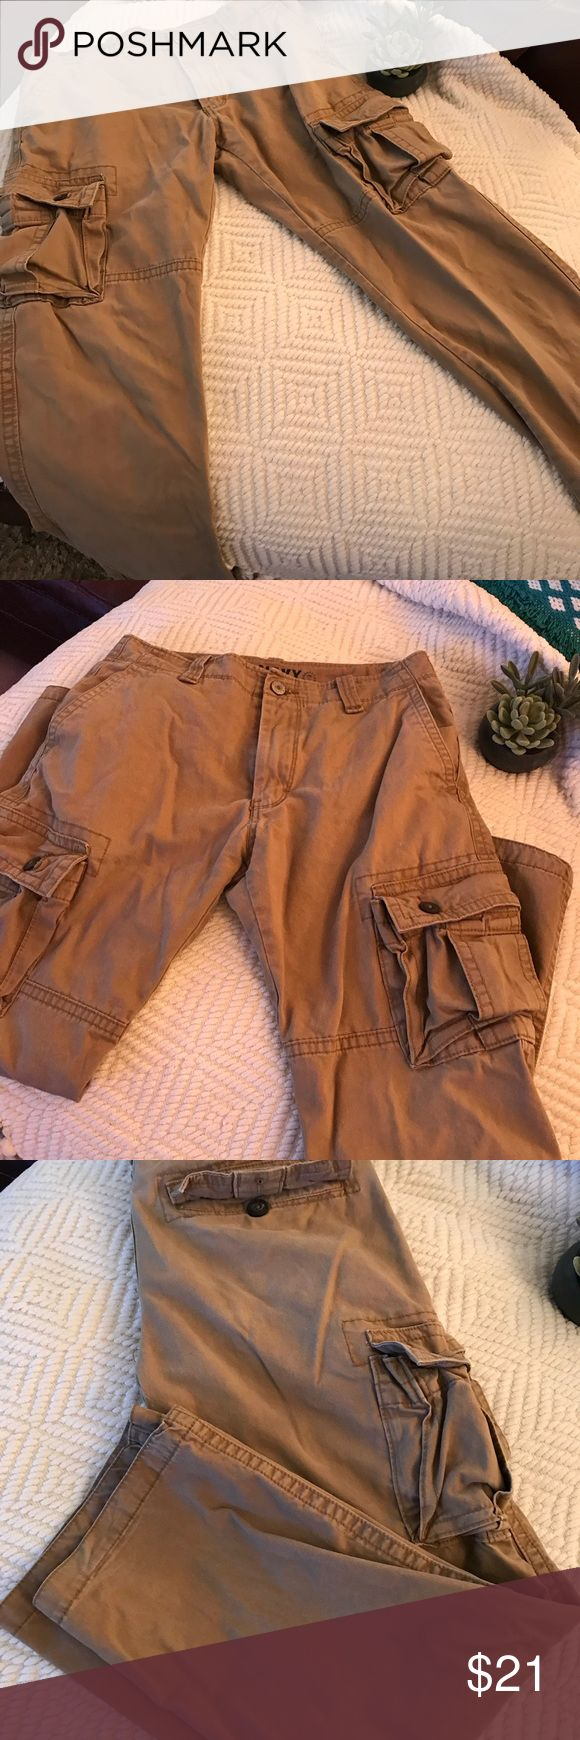 💥Old Navy MENS Cargo Pants 30x30 w/ Side pockets 💥Khaki Cargo pants 30x30 MENS PANTS Old Navy Pants Cargo